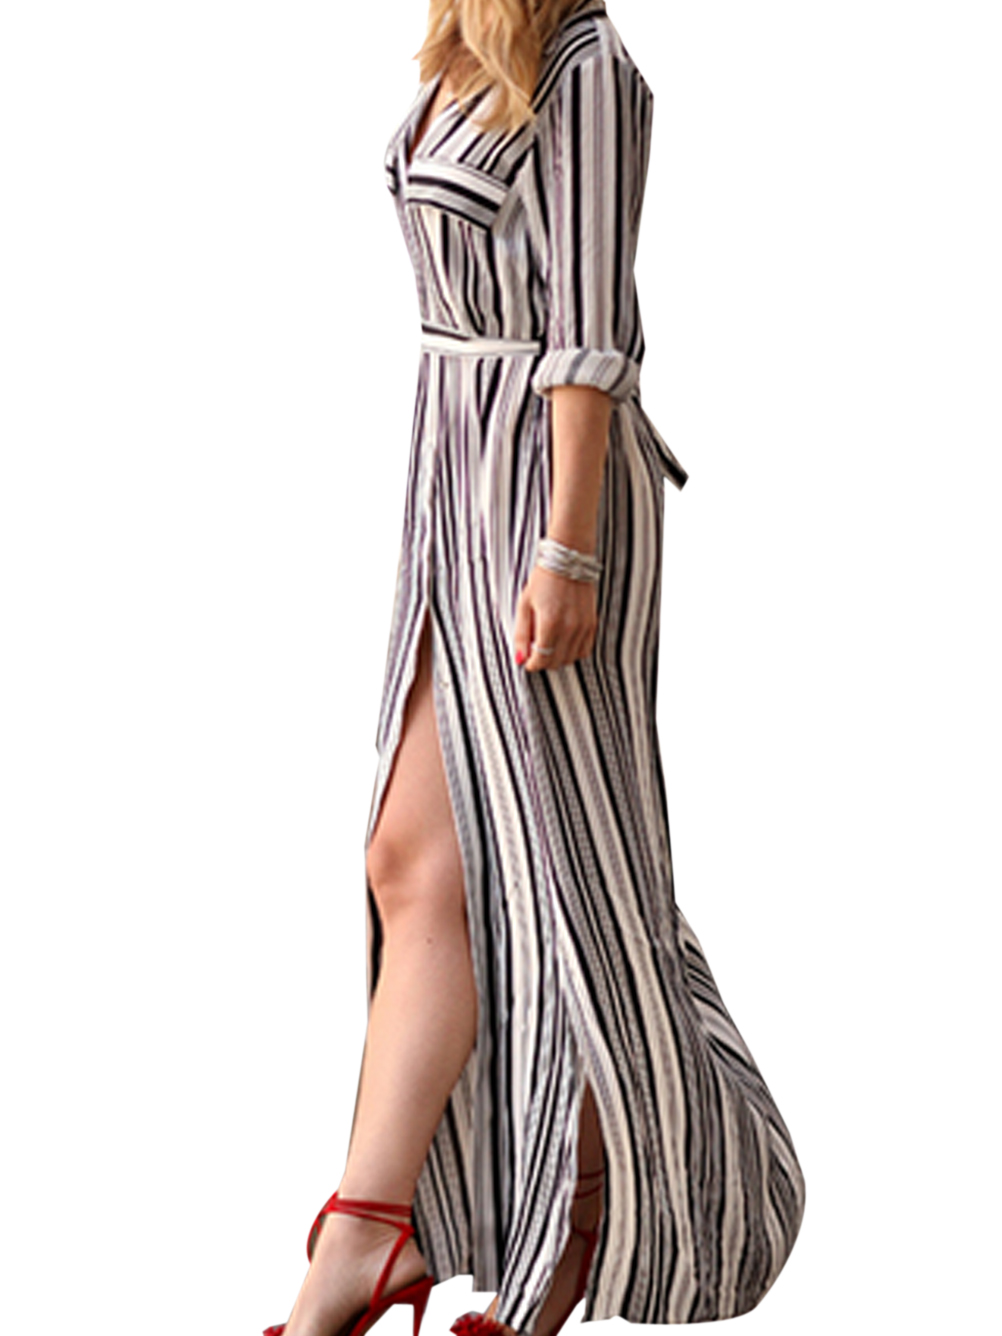 High Split Cut Out Vertical Striped Dress With Belt Long Maxi Slit Black And White Sexy Fashion Summer Dress Petite Elegant 2016(China (Mainland))